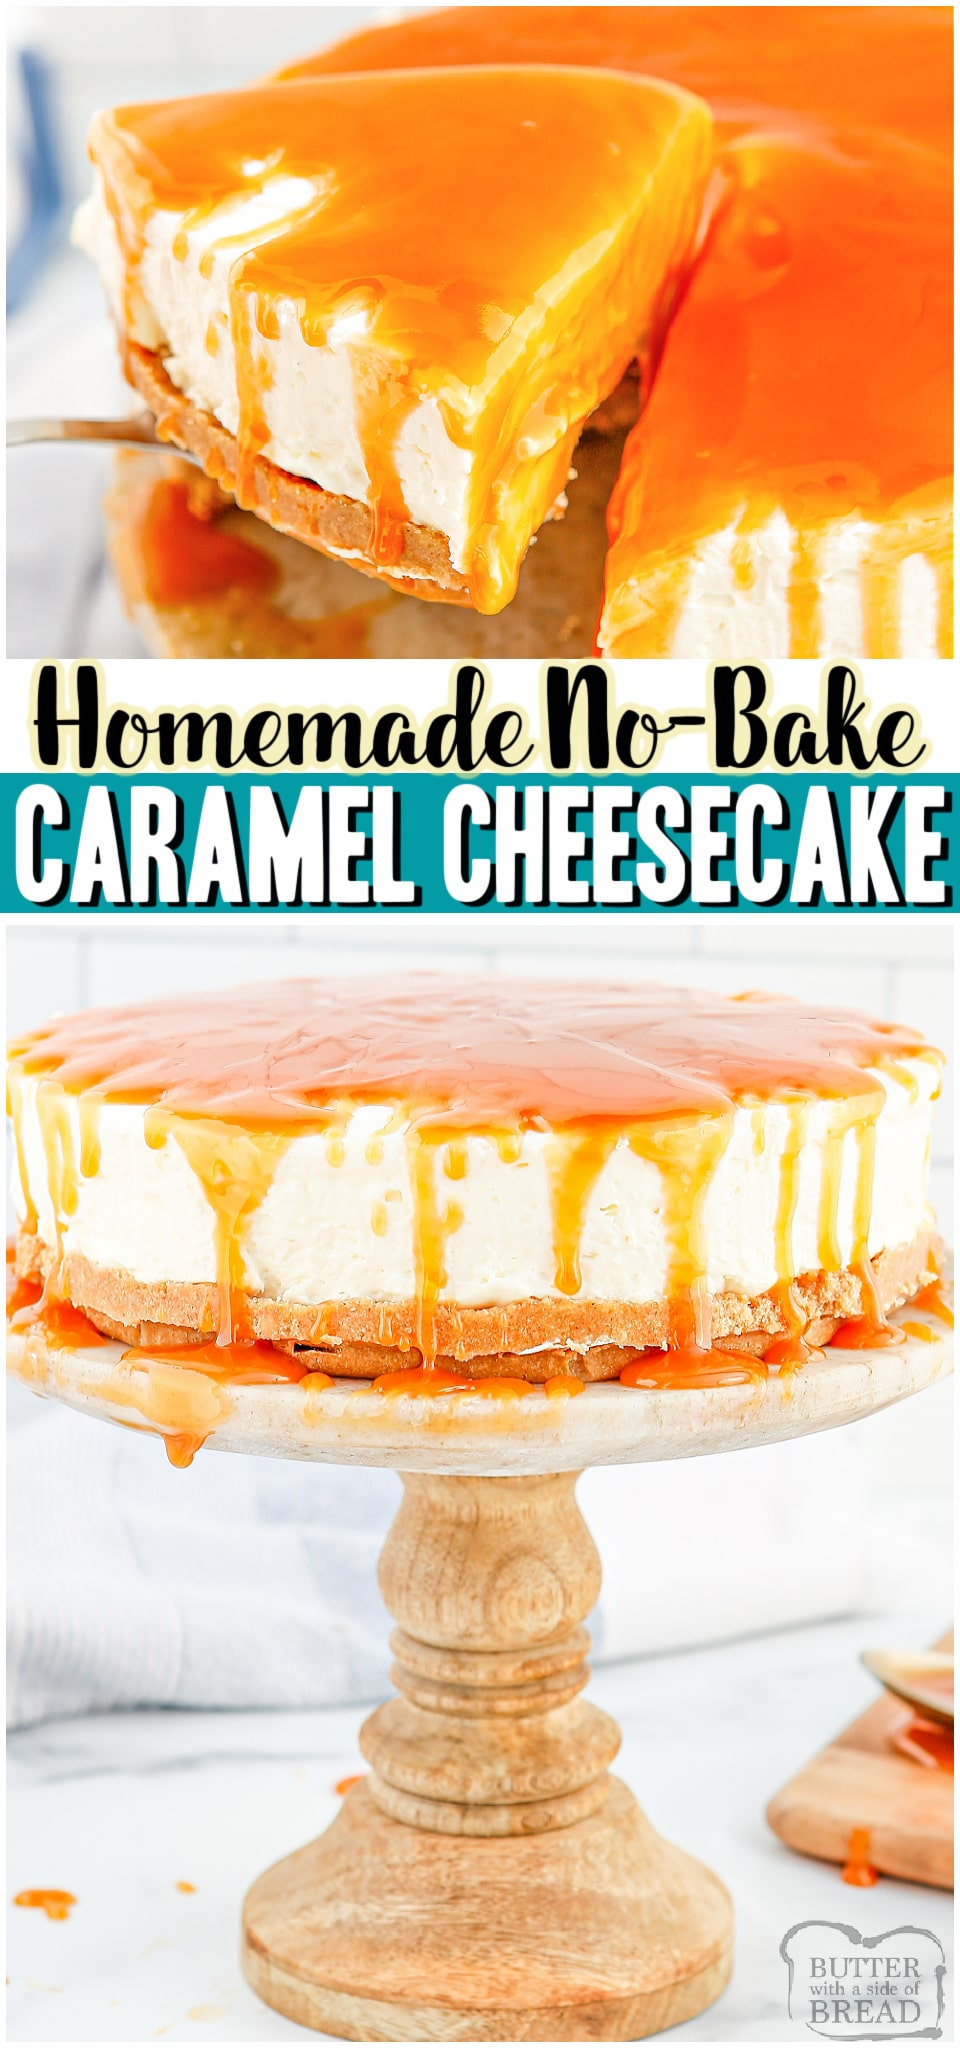 NO-BAKE CARAMEL CHEESECAKE is a deliciously creamy cheesecake recipe topped with a simple homemade caramel sauce. Easy no-bake cheesecake with 3 ingredient caramel that everyone loves! #cheesecake #nobake #homemade #caramel #dessert #easyrecipe from BUTTER WITH A SIDE OF BREAD